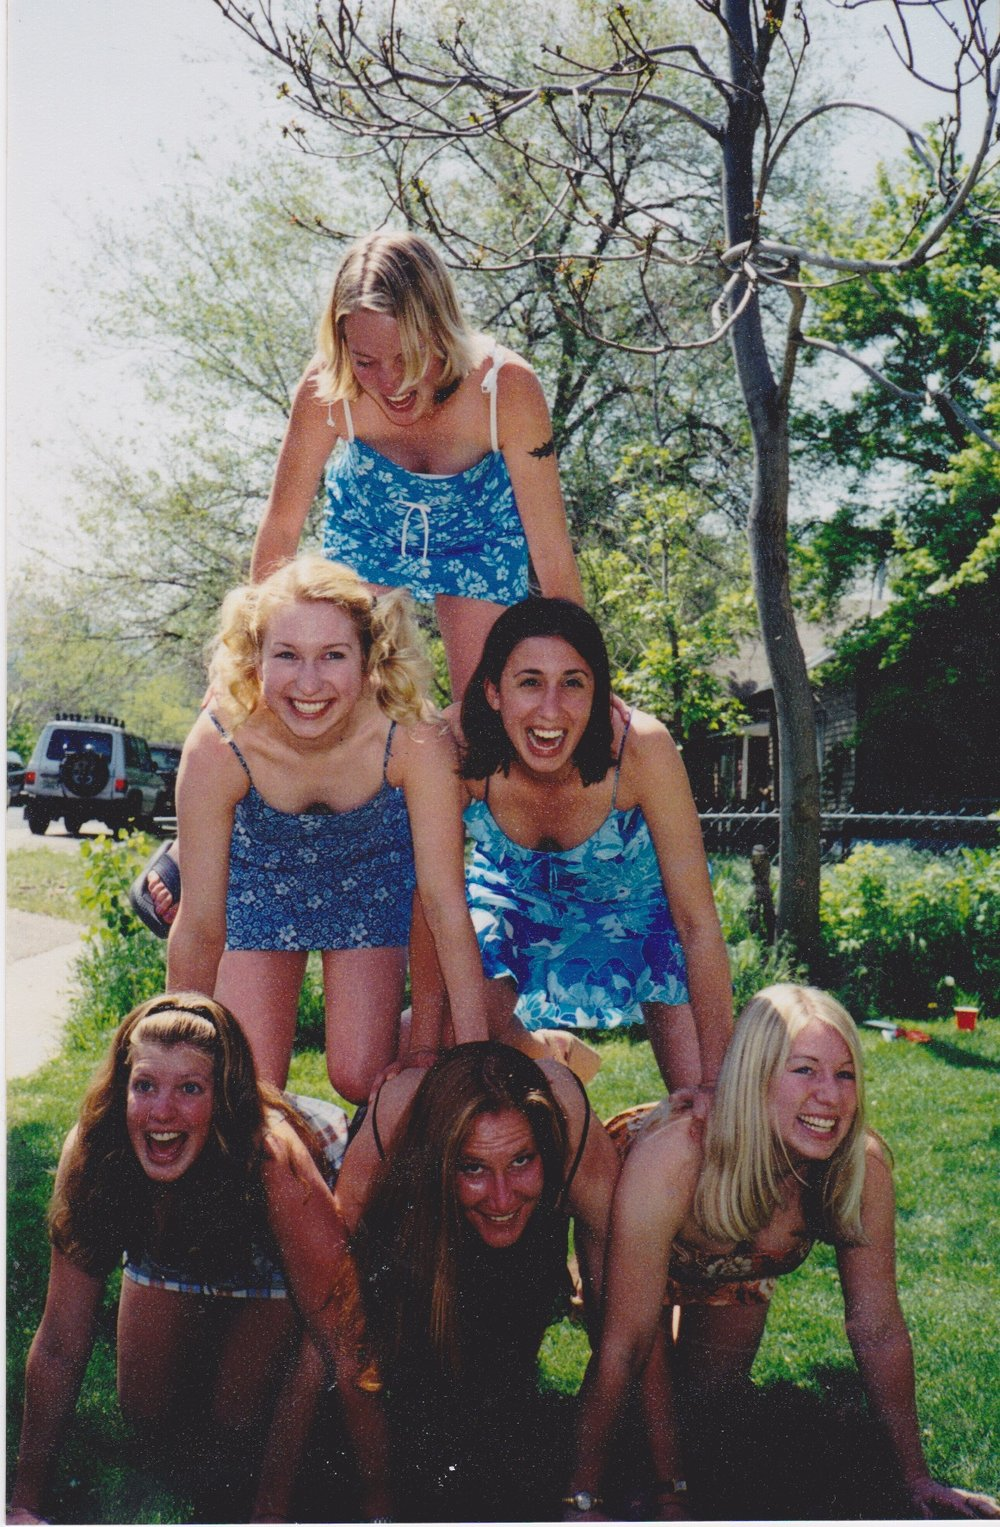 My roommates and best friends from college: Starting bottom screen left and up: Hillary Jackson, Chanda Grizzel, Susie Wood, Sarah Gonzalez, Annie Fabik, and yours truly.